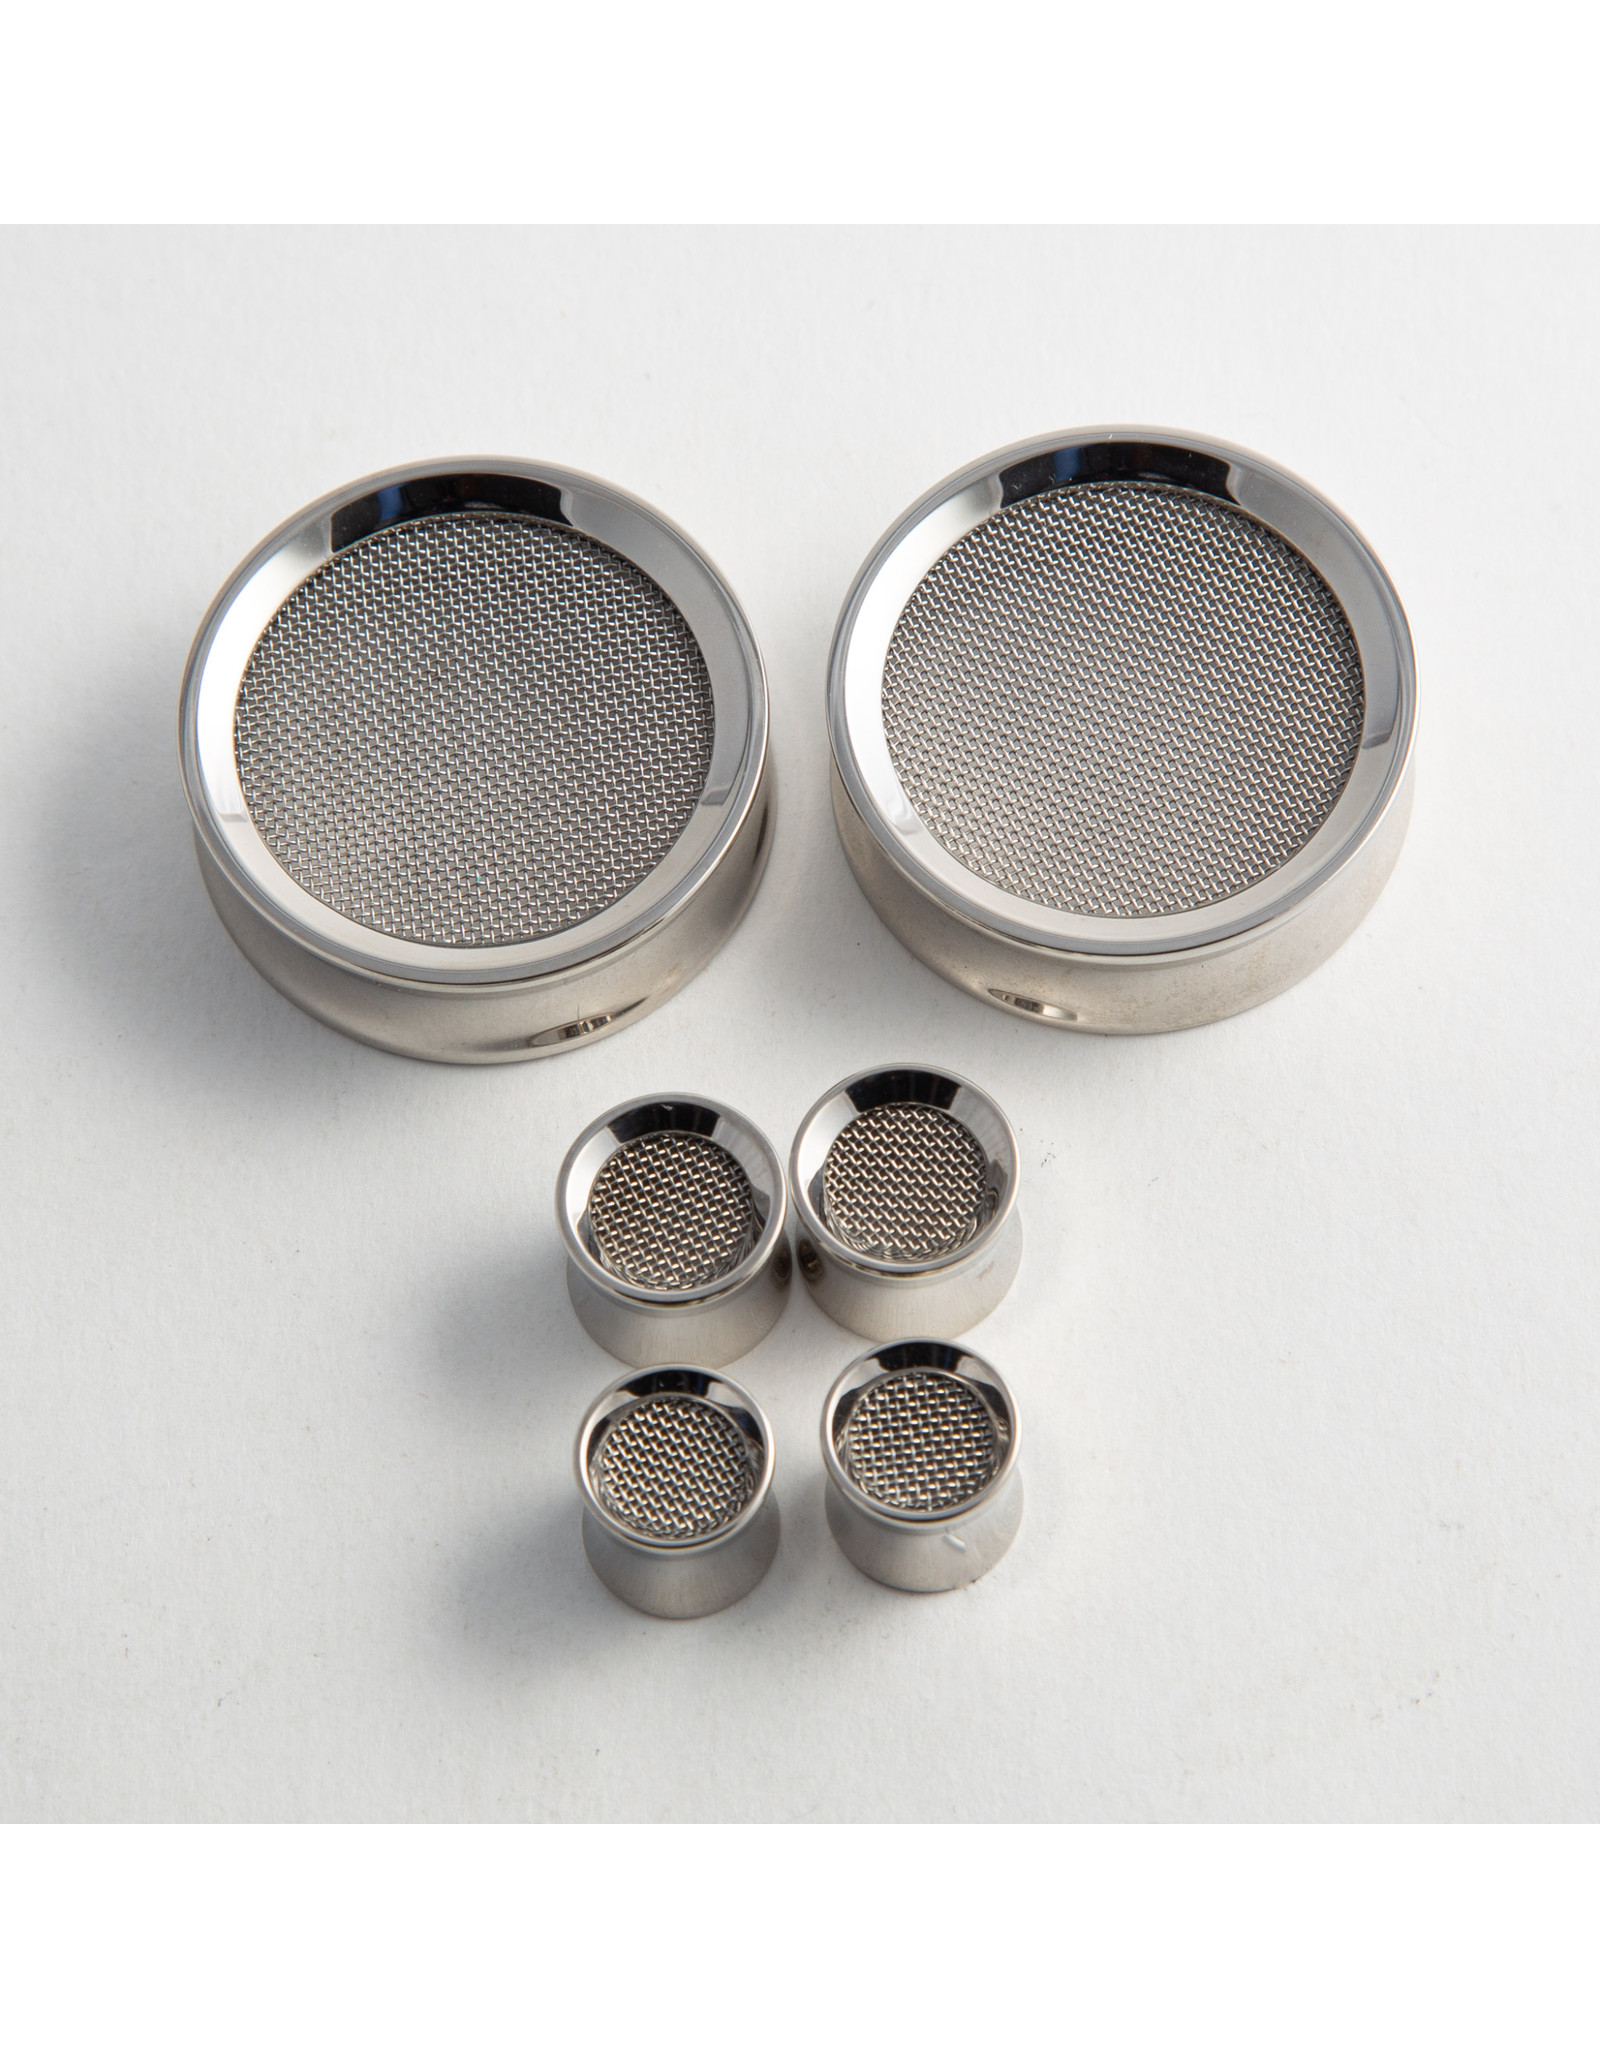 Reign Custom Design Reign 1-3/8 steel Screens double flared eyelets